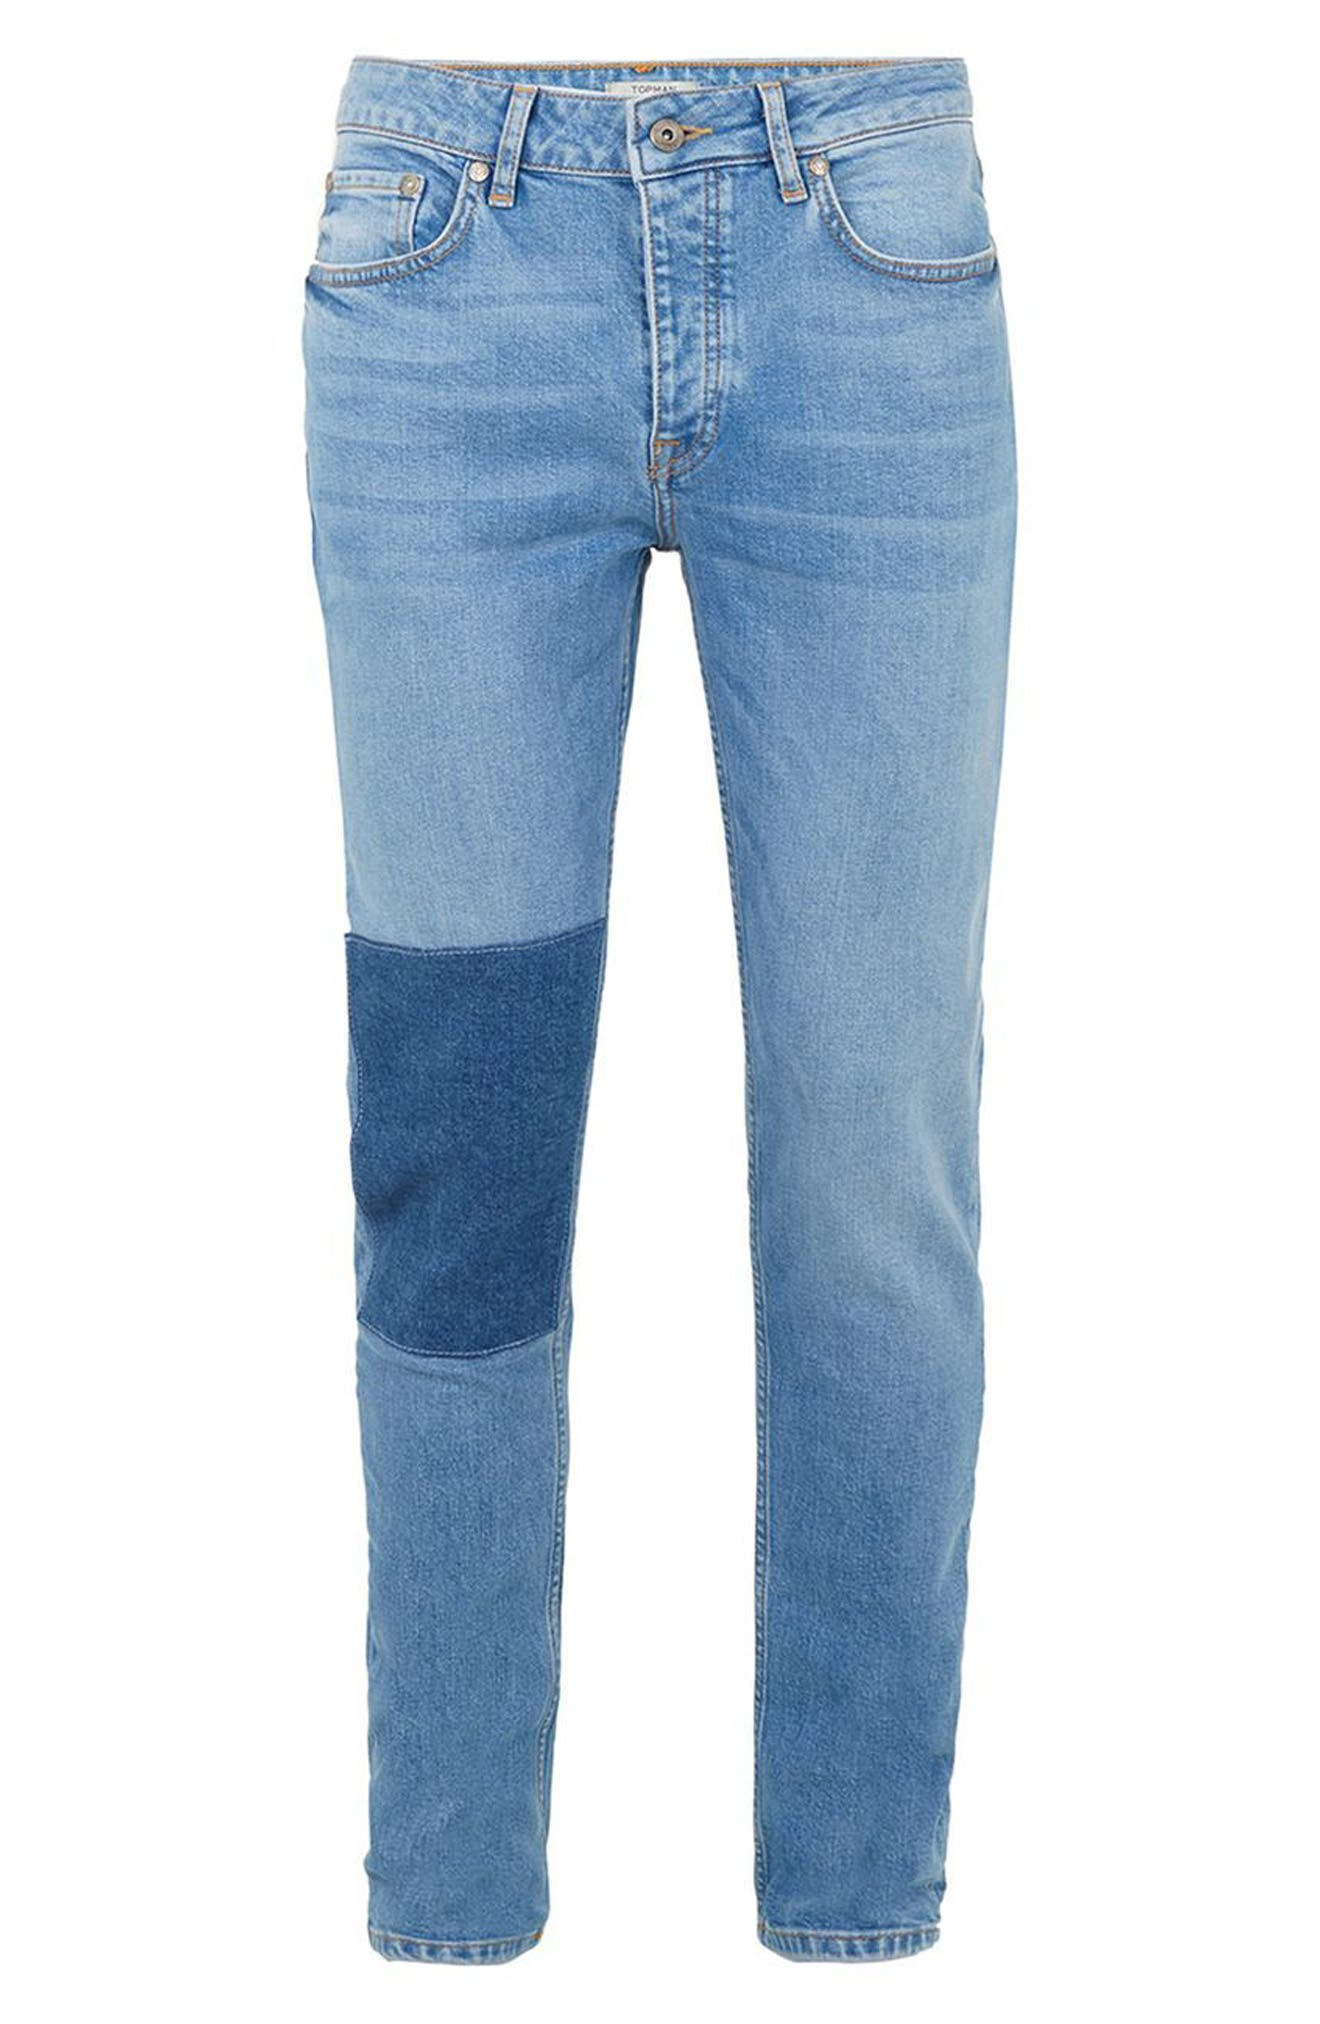 Patch Stretch Skinny Jeans,                             Alternate thumbnail 4, color,                             400